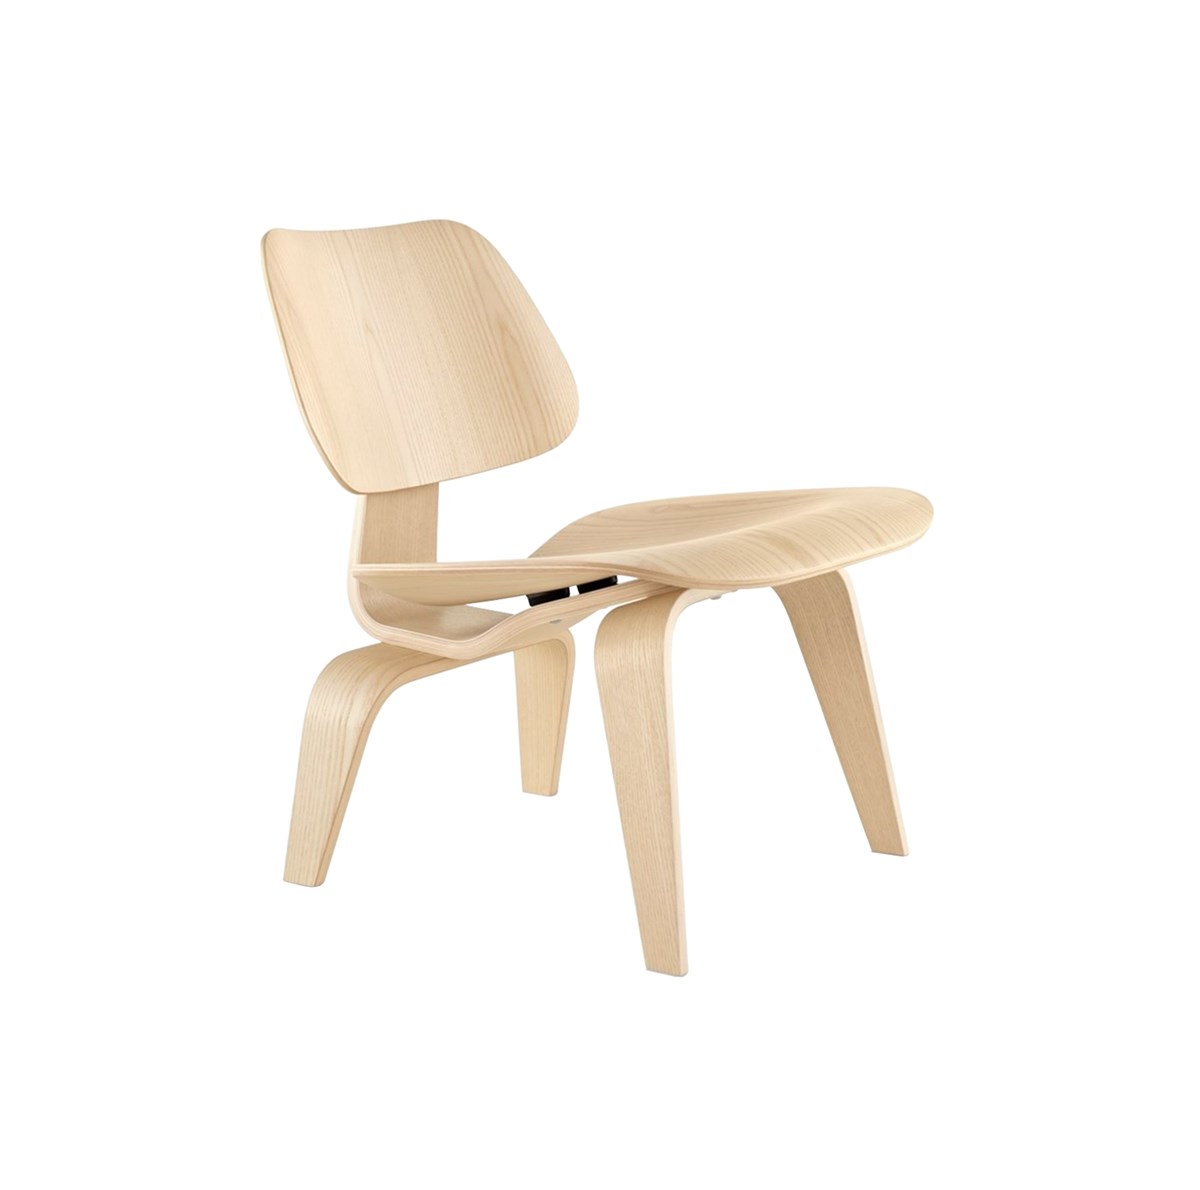 Herman-Miller-Charles-&-Ray-Eames-Eames®-Moulded-Plywood-Chairs-Matisse-1